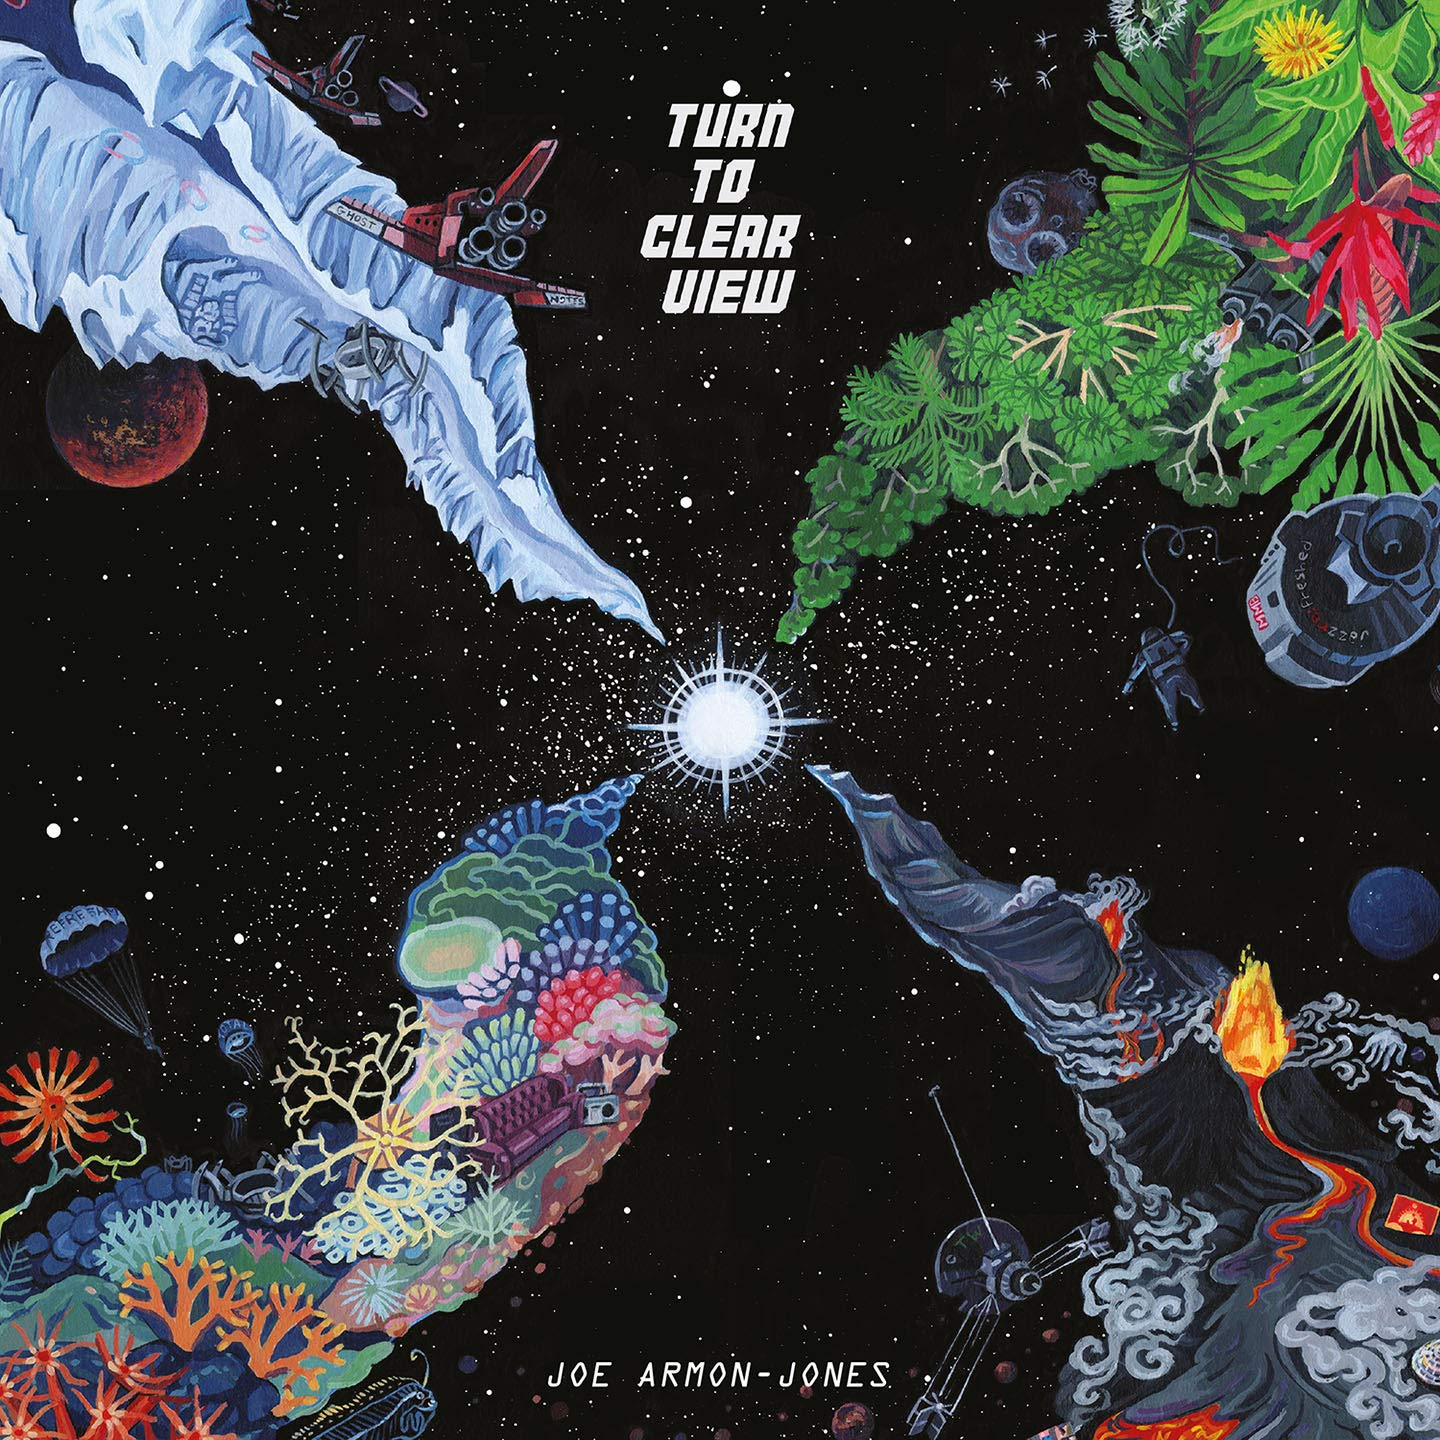 JOE ARMON-JONES - Turn To Clear View cover